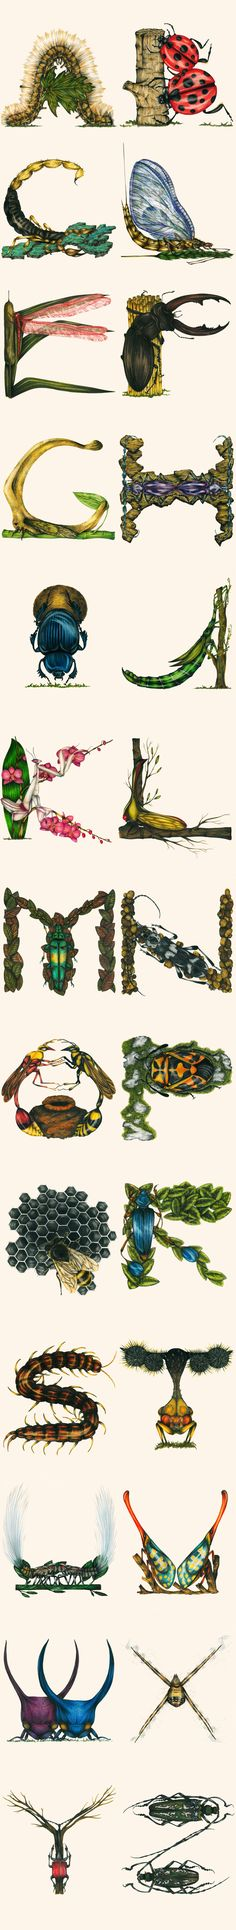 Amazingly detailed alphabet composed of drawings of bugs